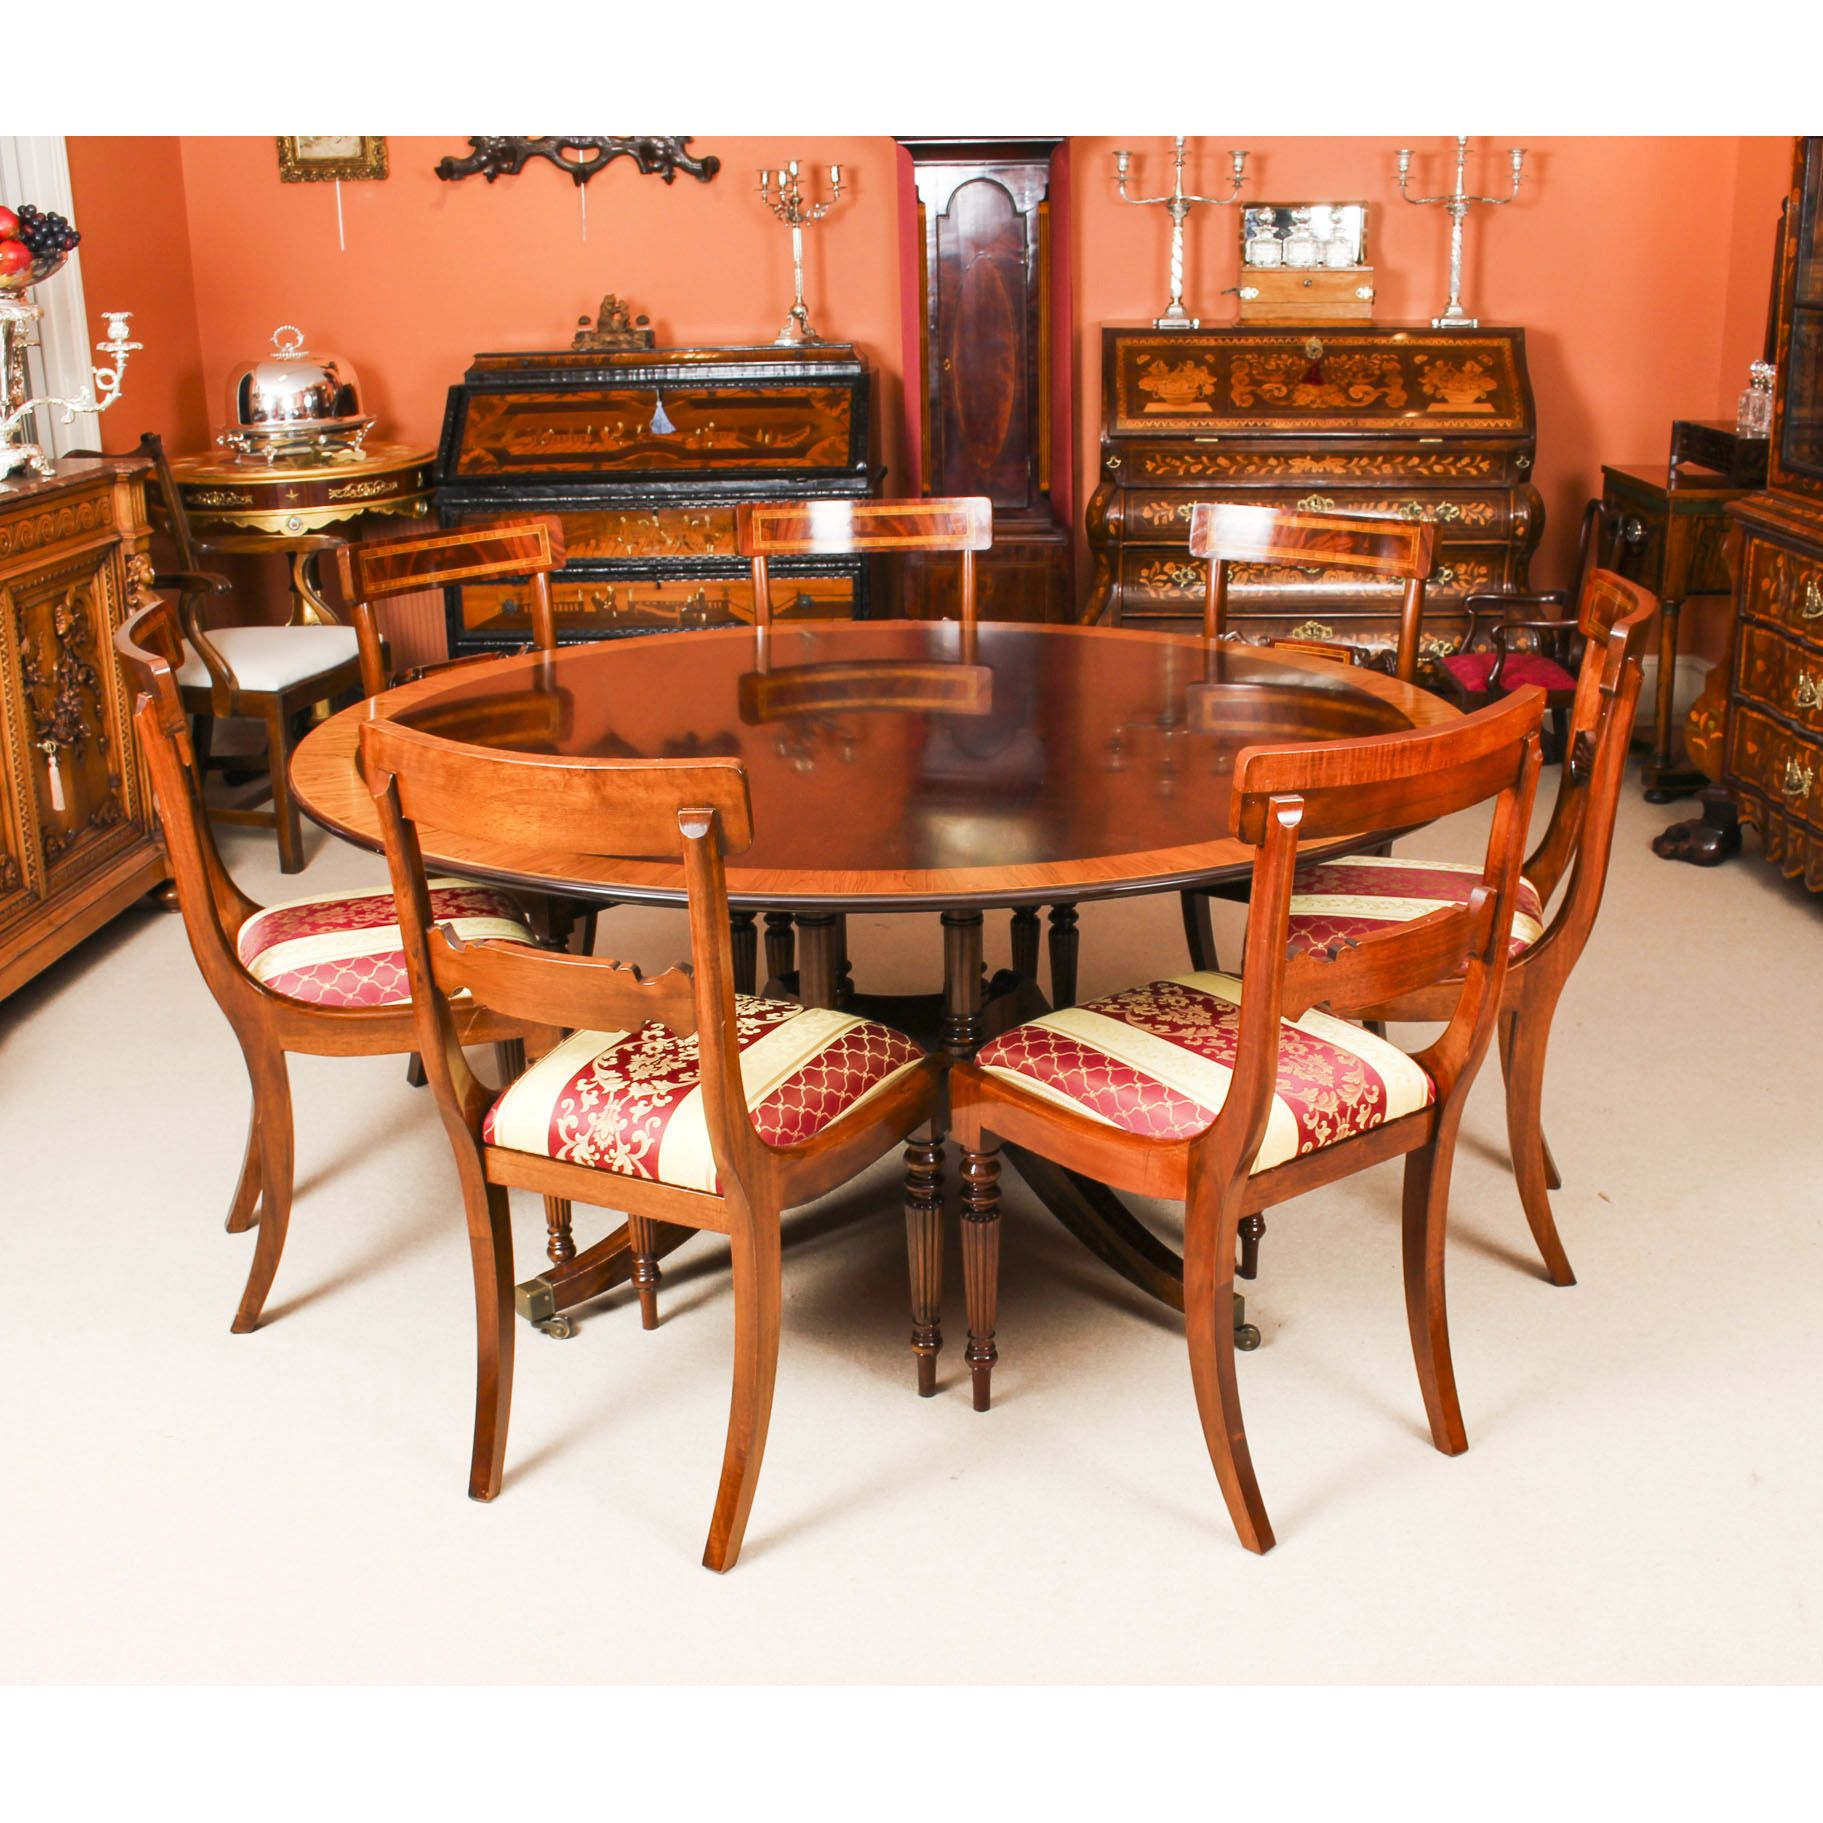 Vintage 5ft 6 Round Table By Millwood 6 Dining Chairs 20th